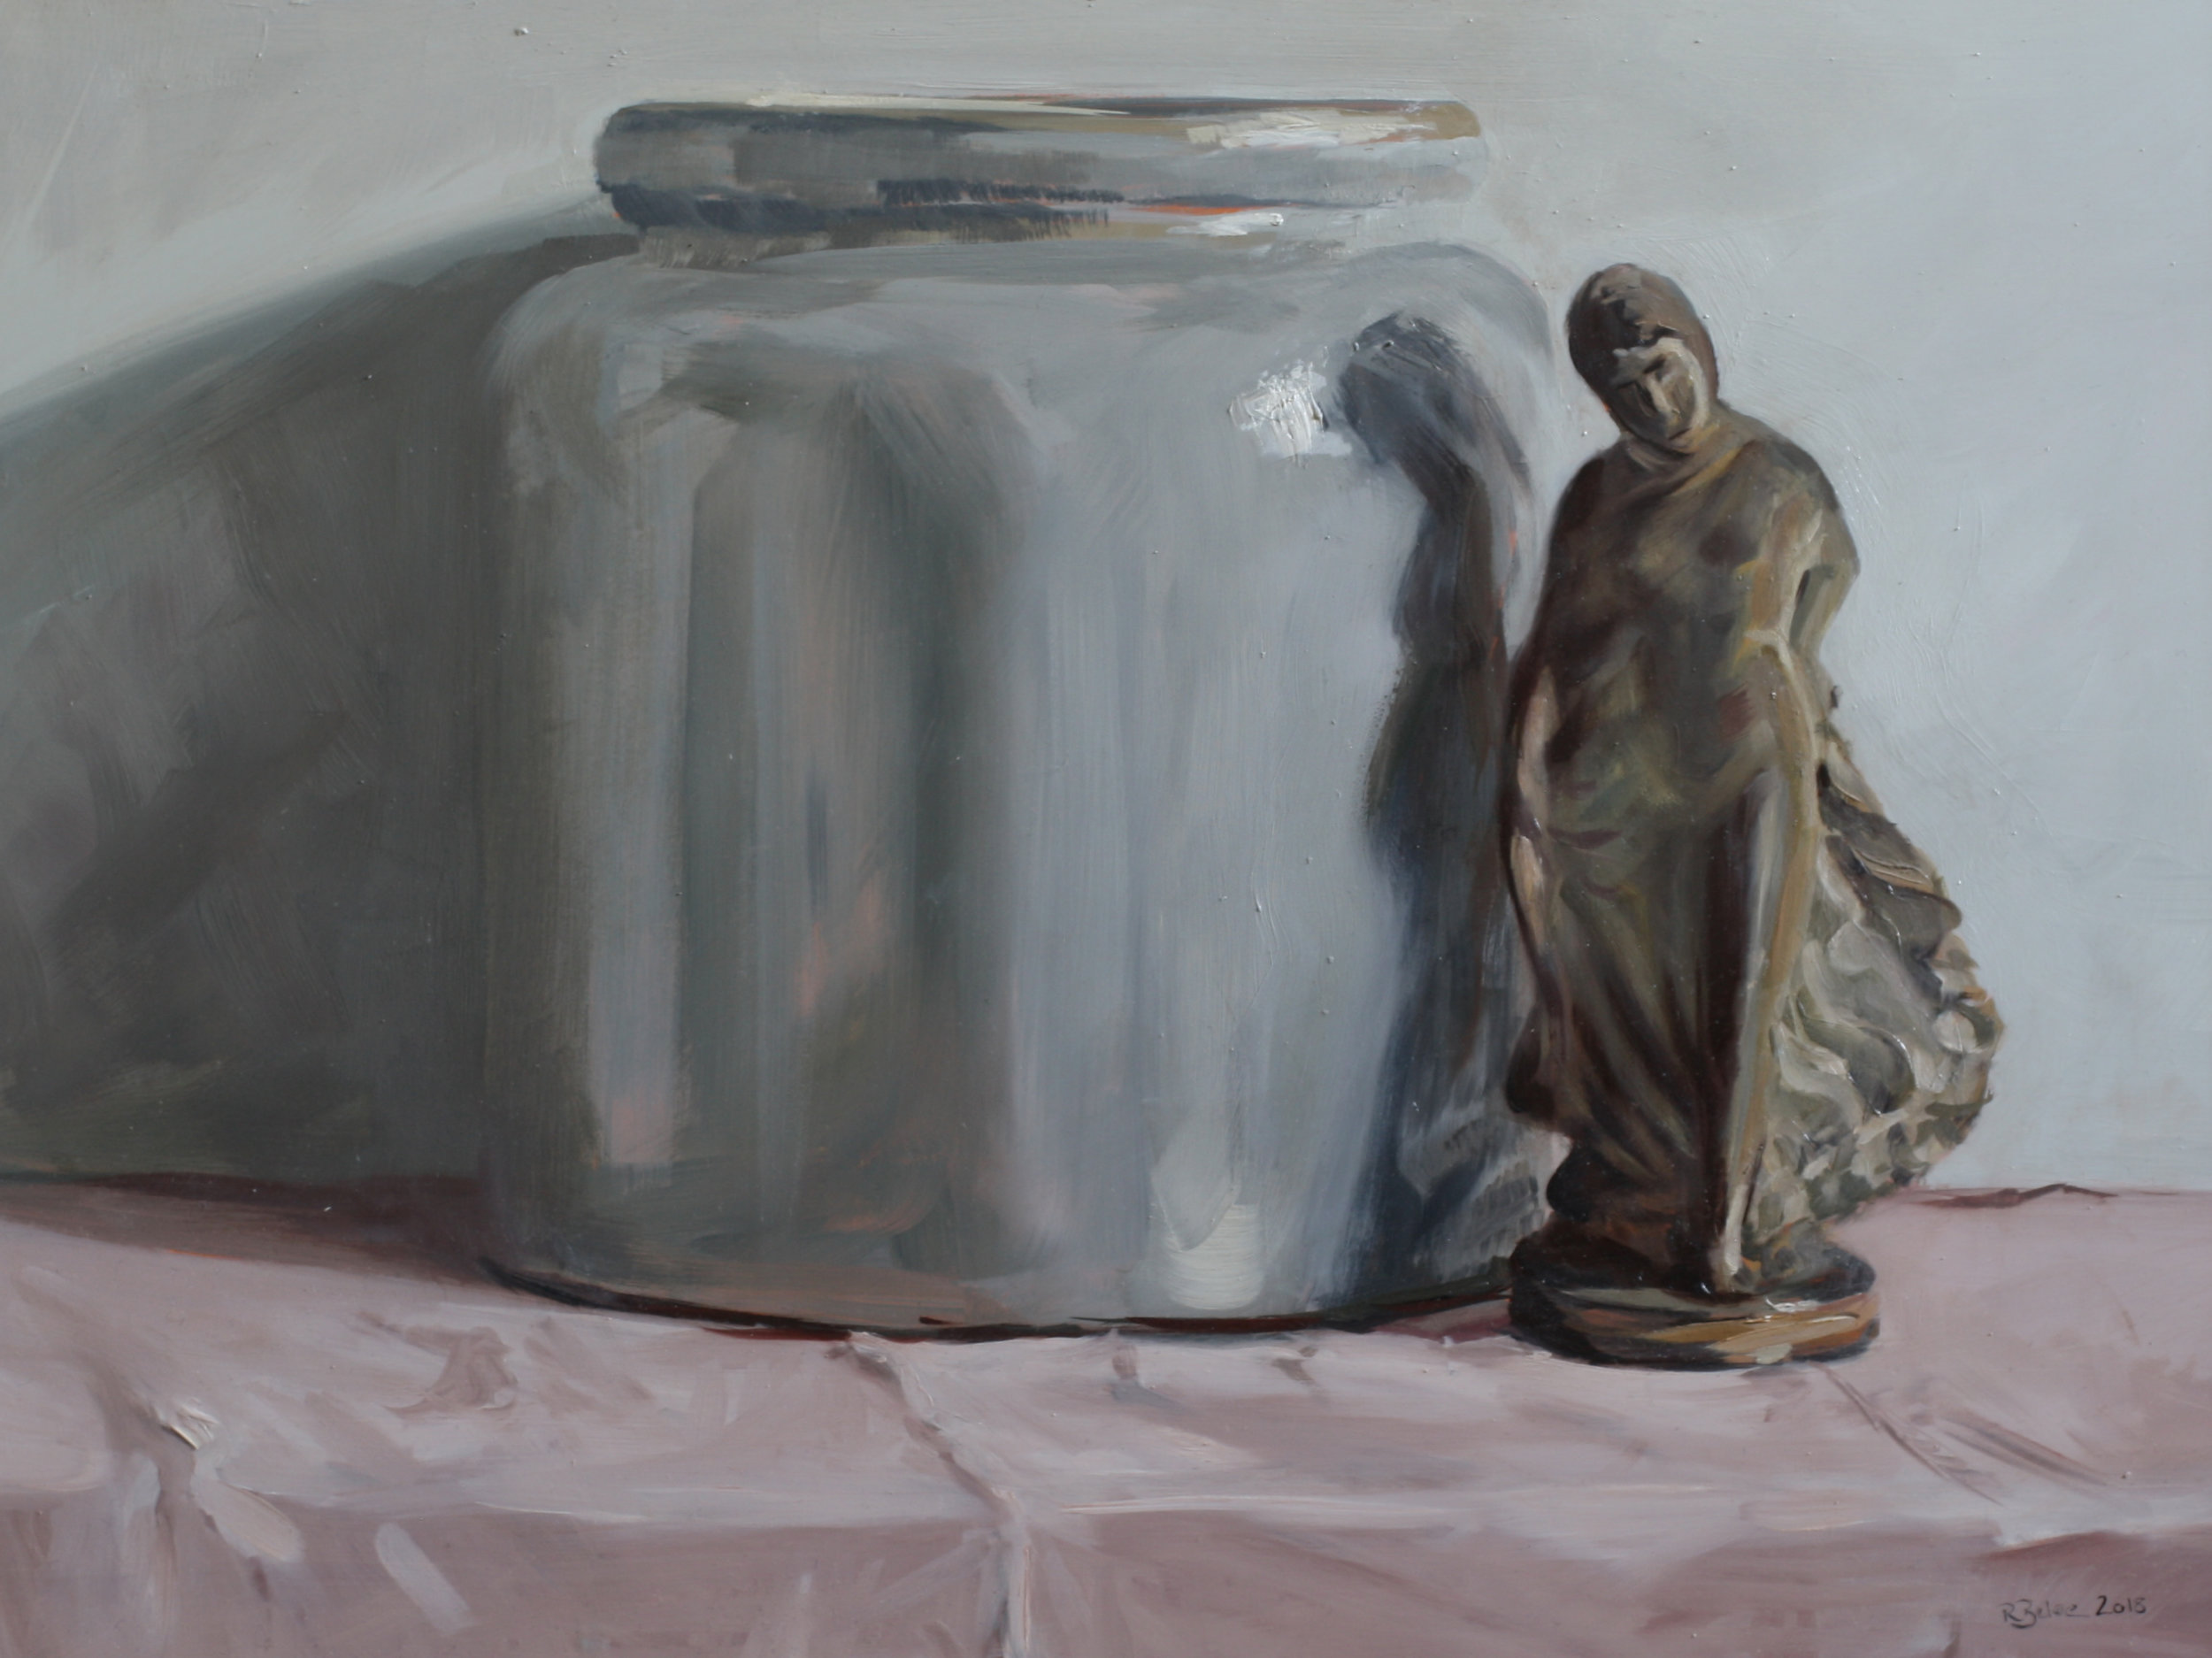 Confit Pot and Terracotta Figurine I  oil on gesso panel  30 x 40cm painting size  45 x 55cm frame size  £850